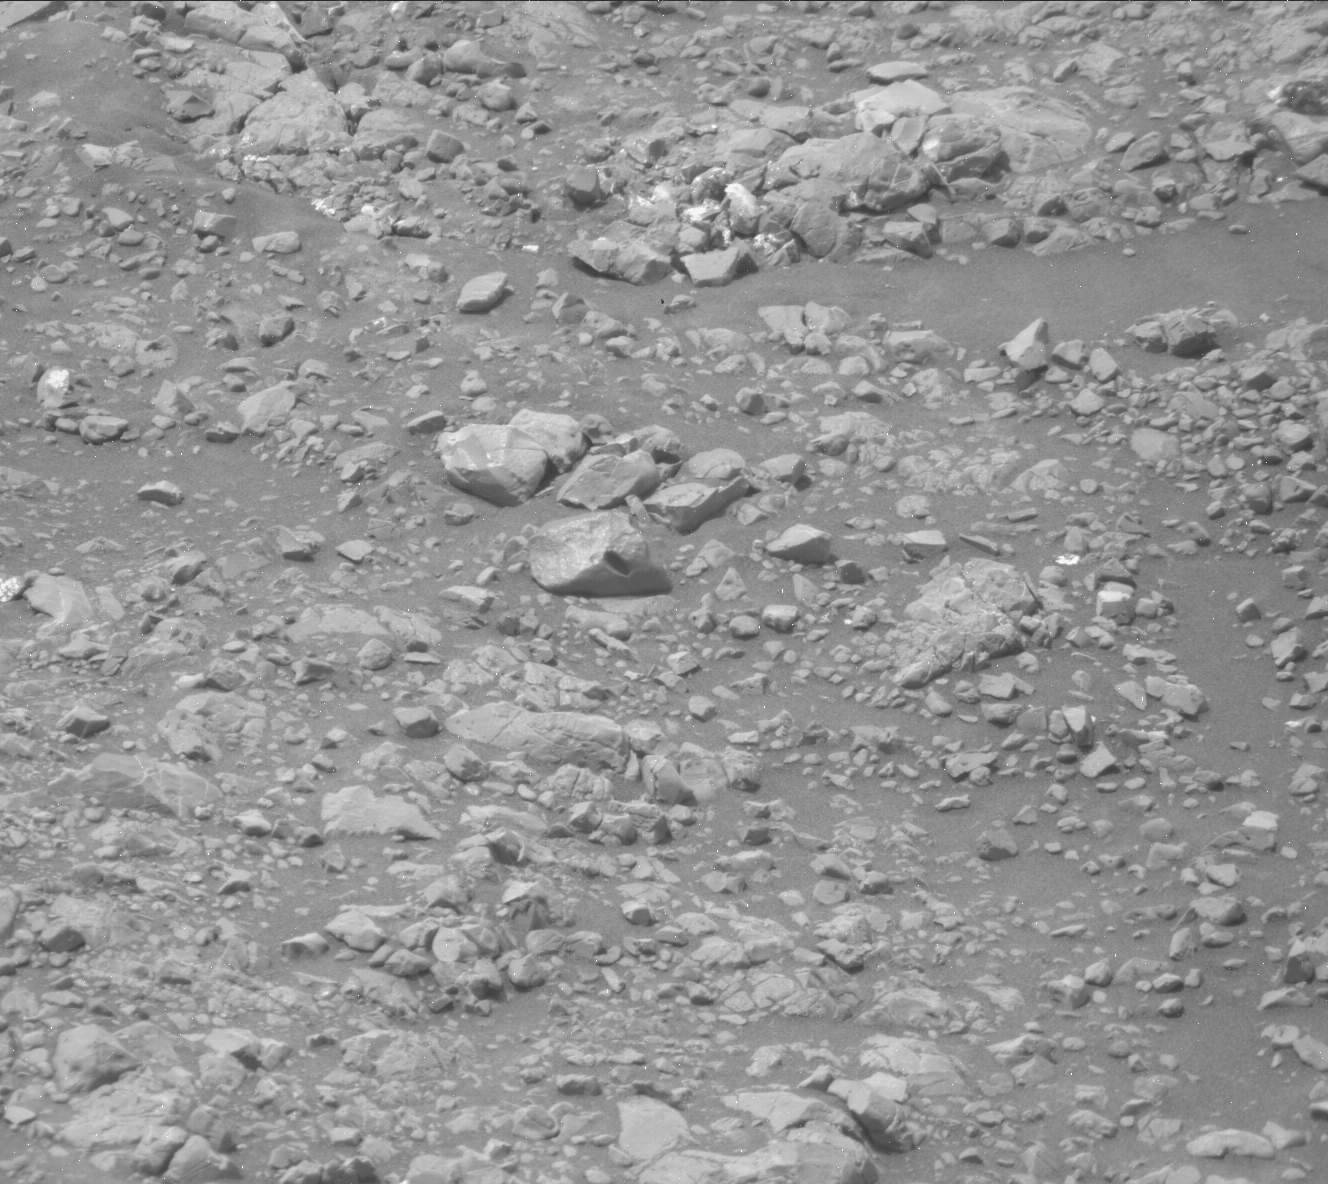 Nasa's Mars rover Curiosity acquired this image using its Mast Camera (Mastcam) on Sol 2255